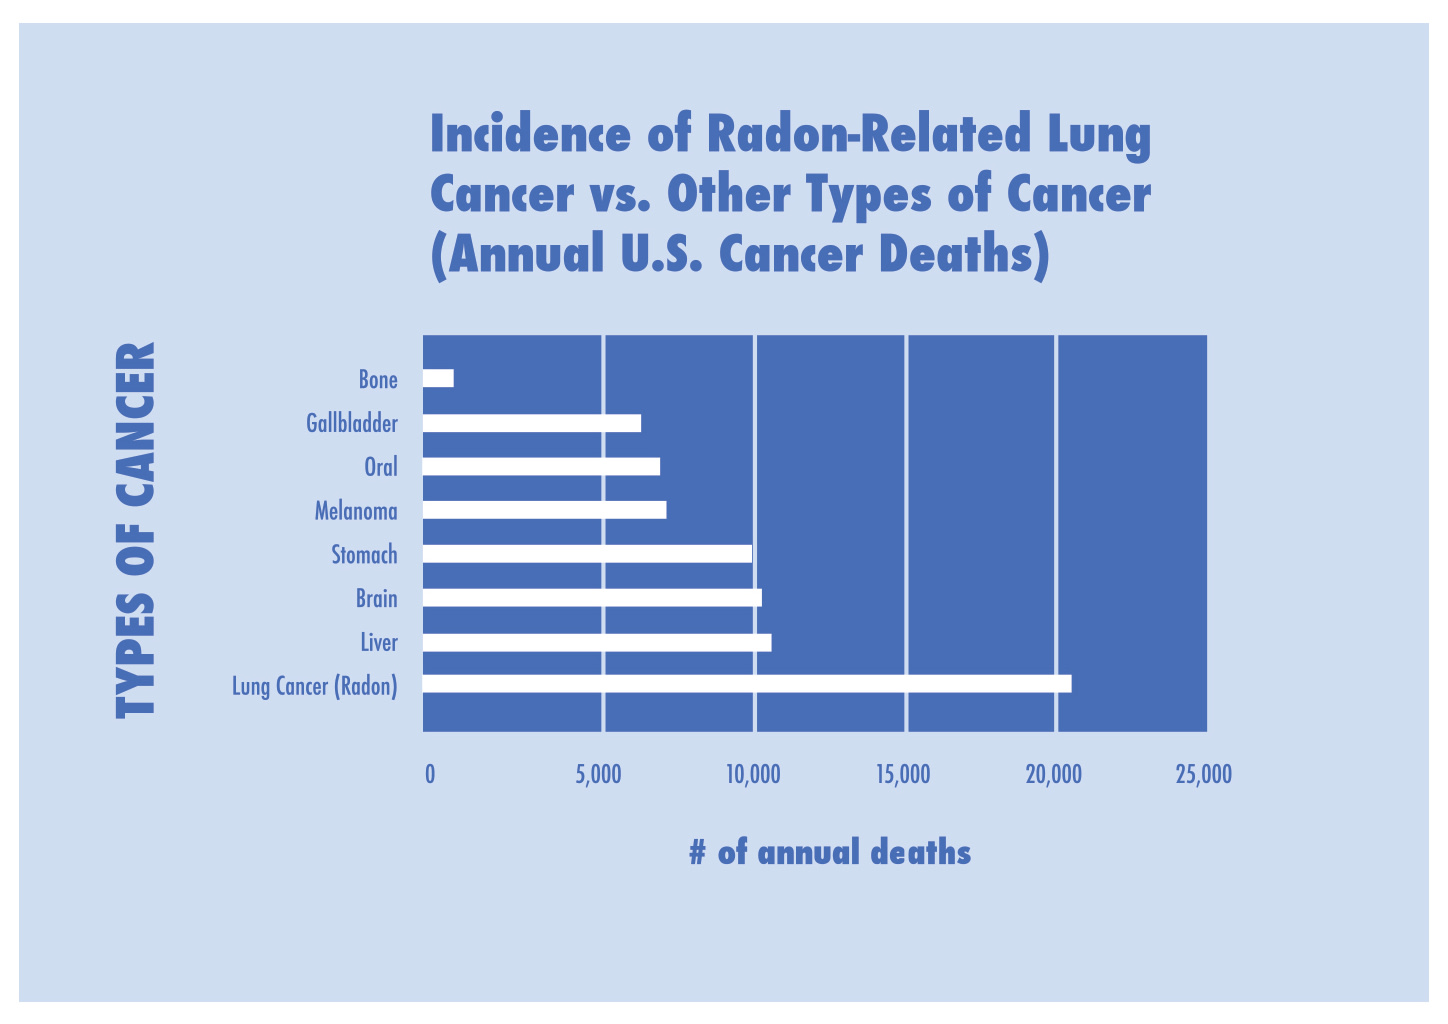 Incidence of radon-related lung cancer.